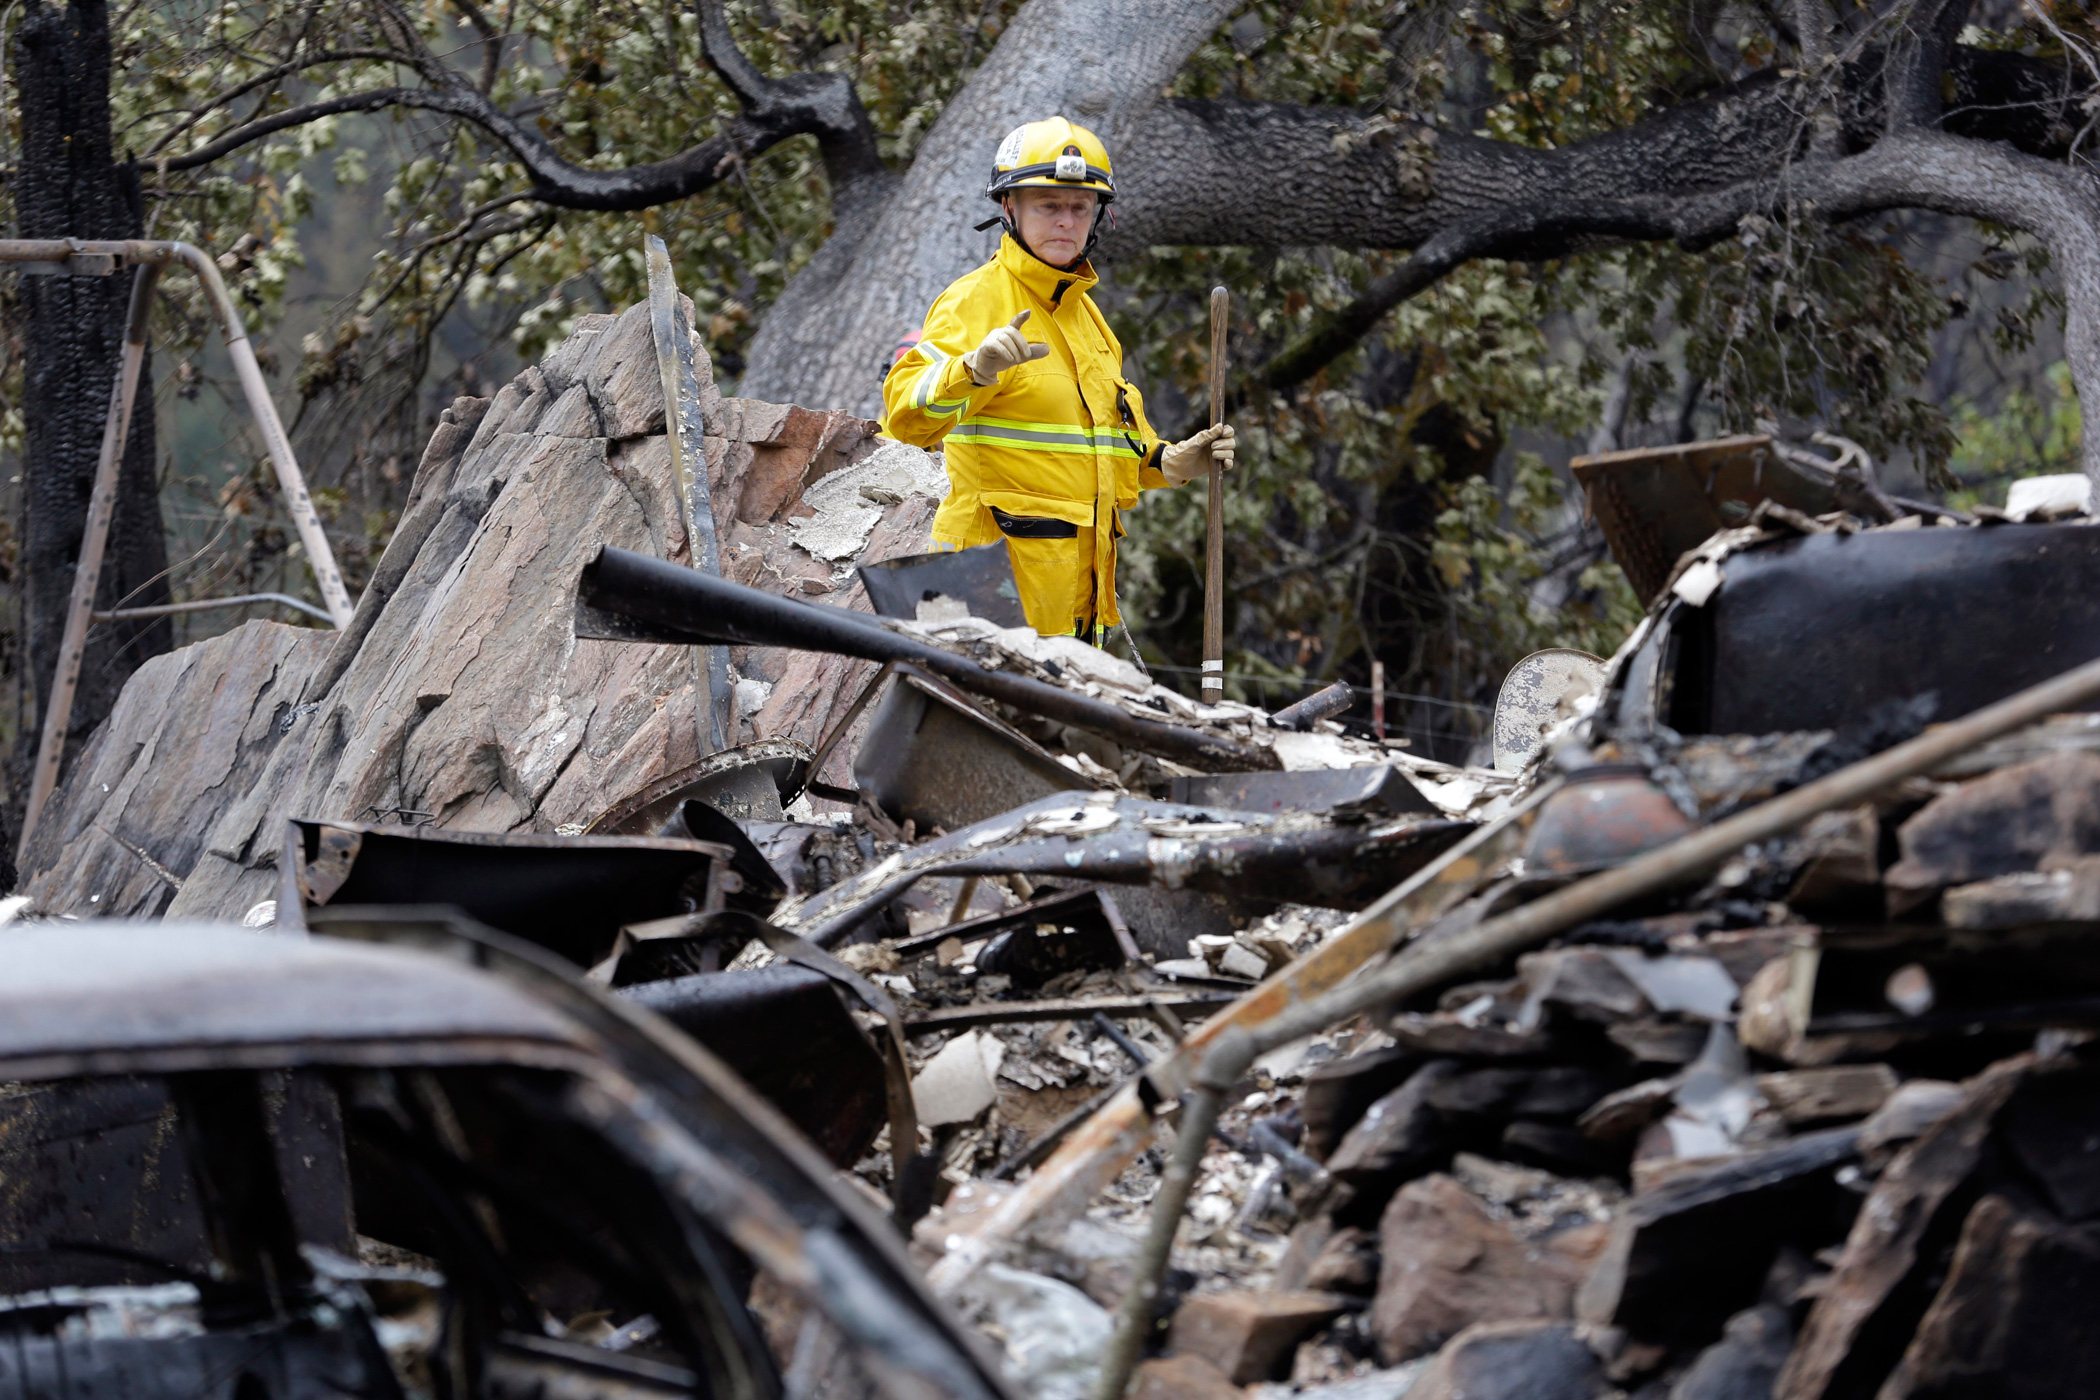 Cadaver search dog handler Lynne Engelbert looks over the remains of a home in the Anderson Springs area of a man missing following a wildfire days earlier on Sept. 16, 2015, near Middletown, Calif.